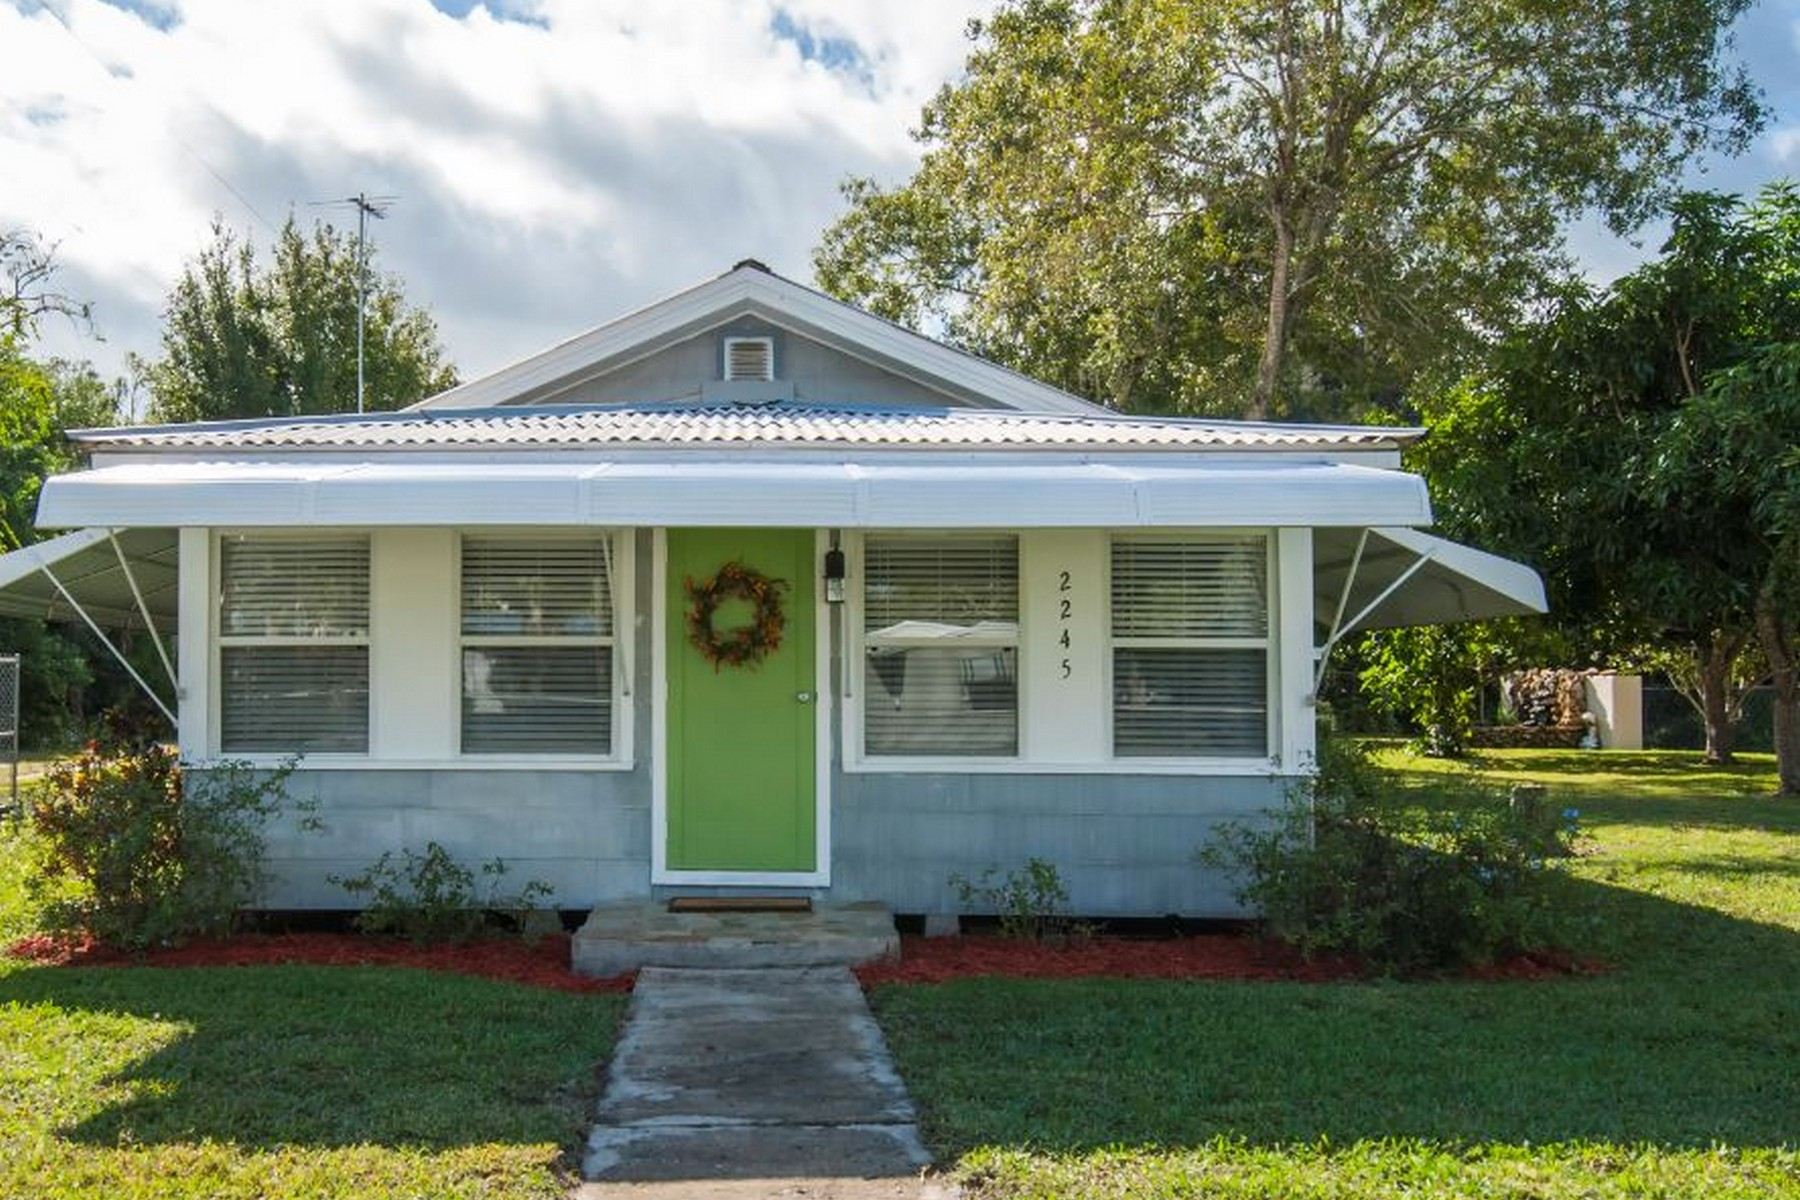 Single Family Home for Sale at Florida Cottage Home 2245 18th Street Vero Beach, Florida 32960 United States